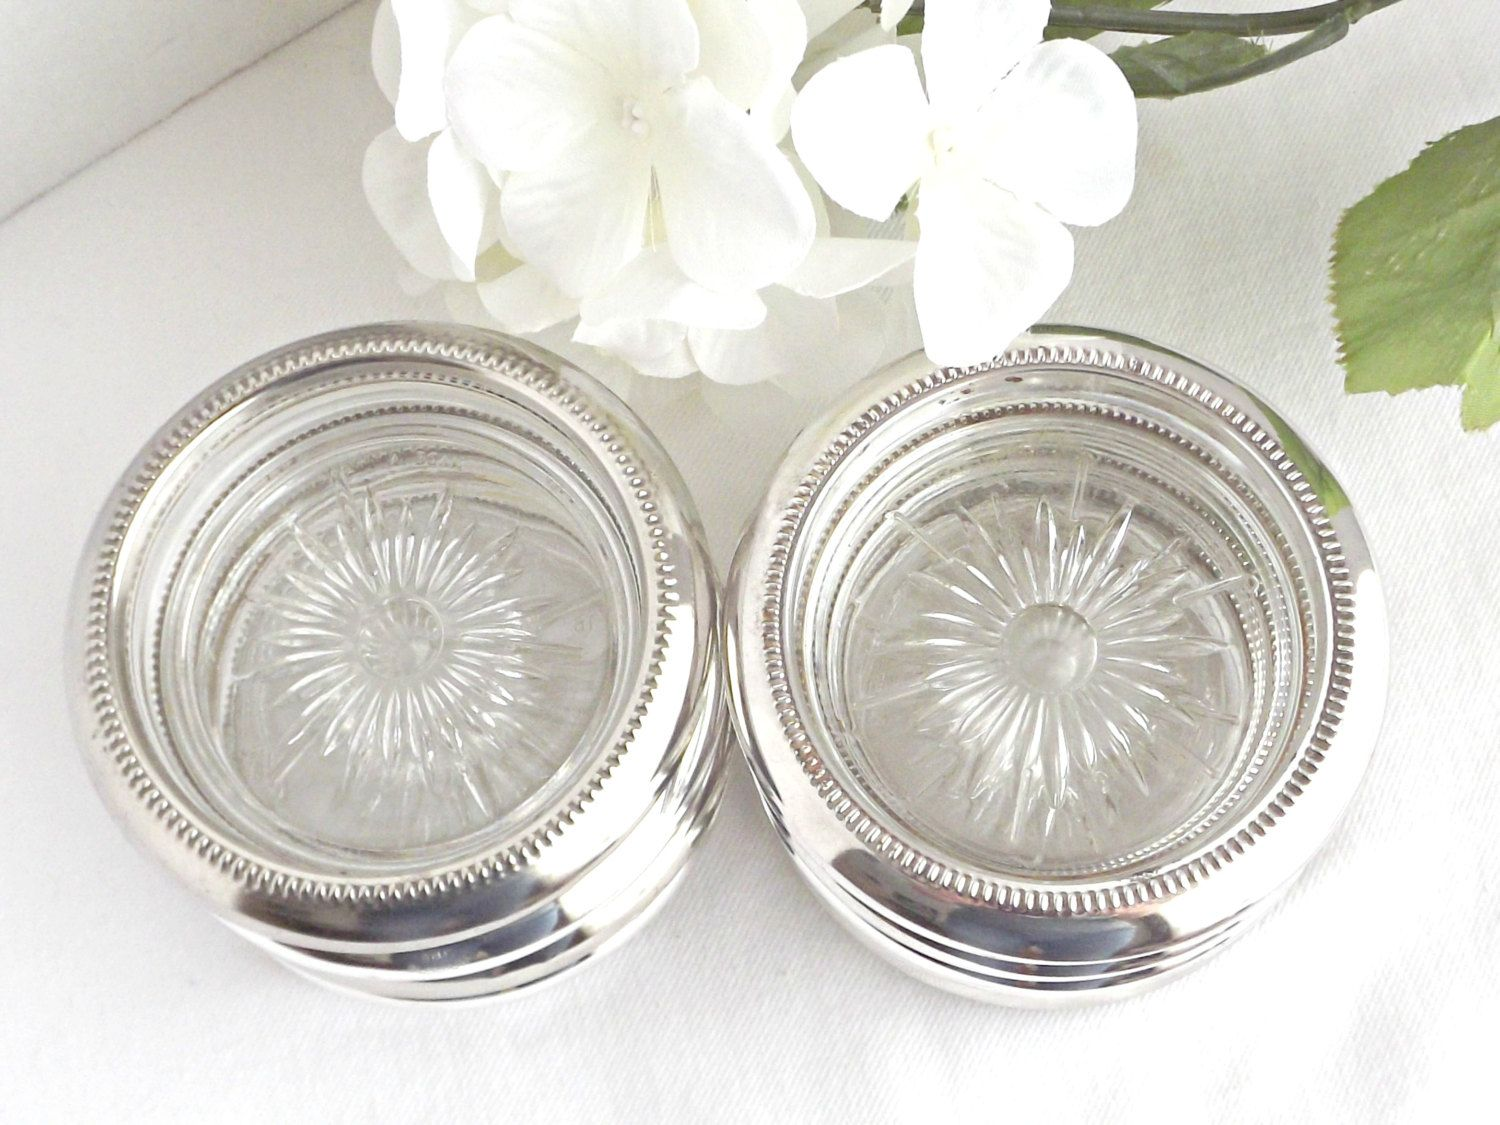 Silver Plated And Glass Coasters Vintage Coasters Italian Glass